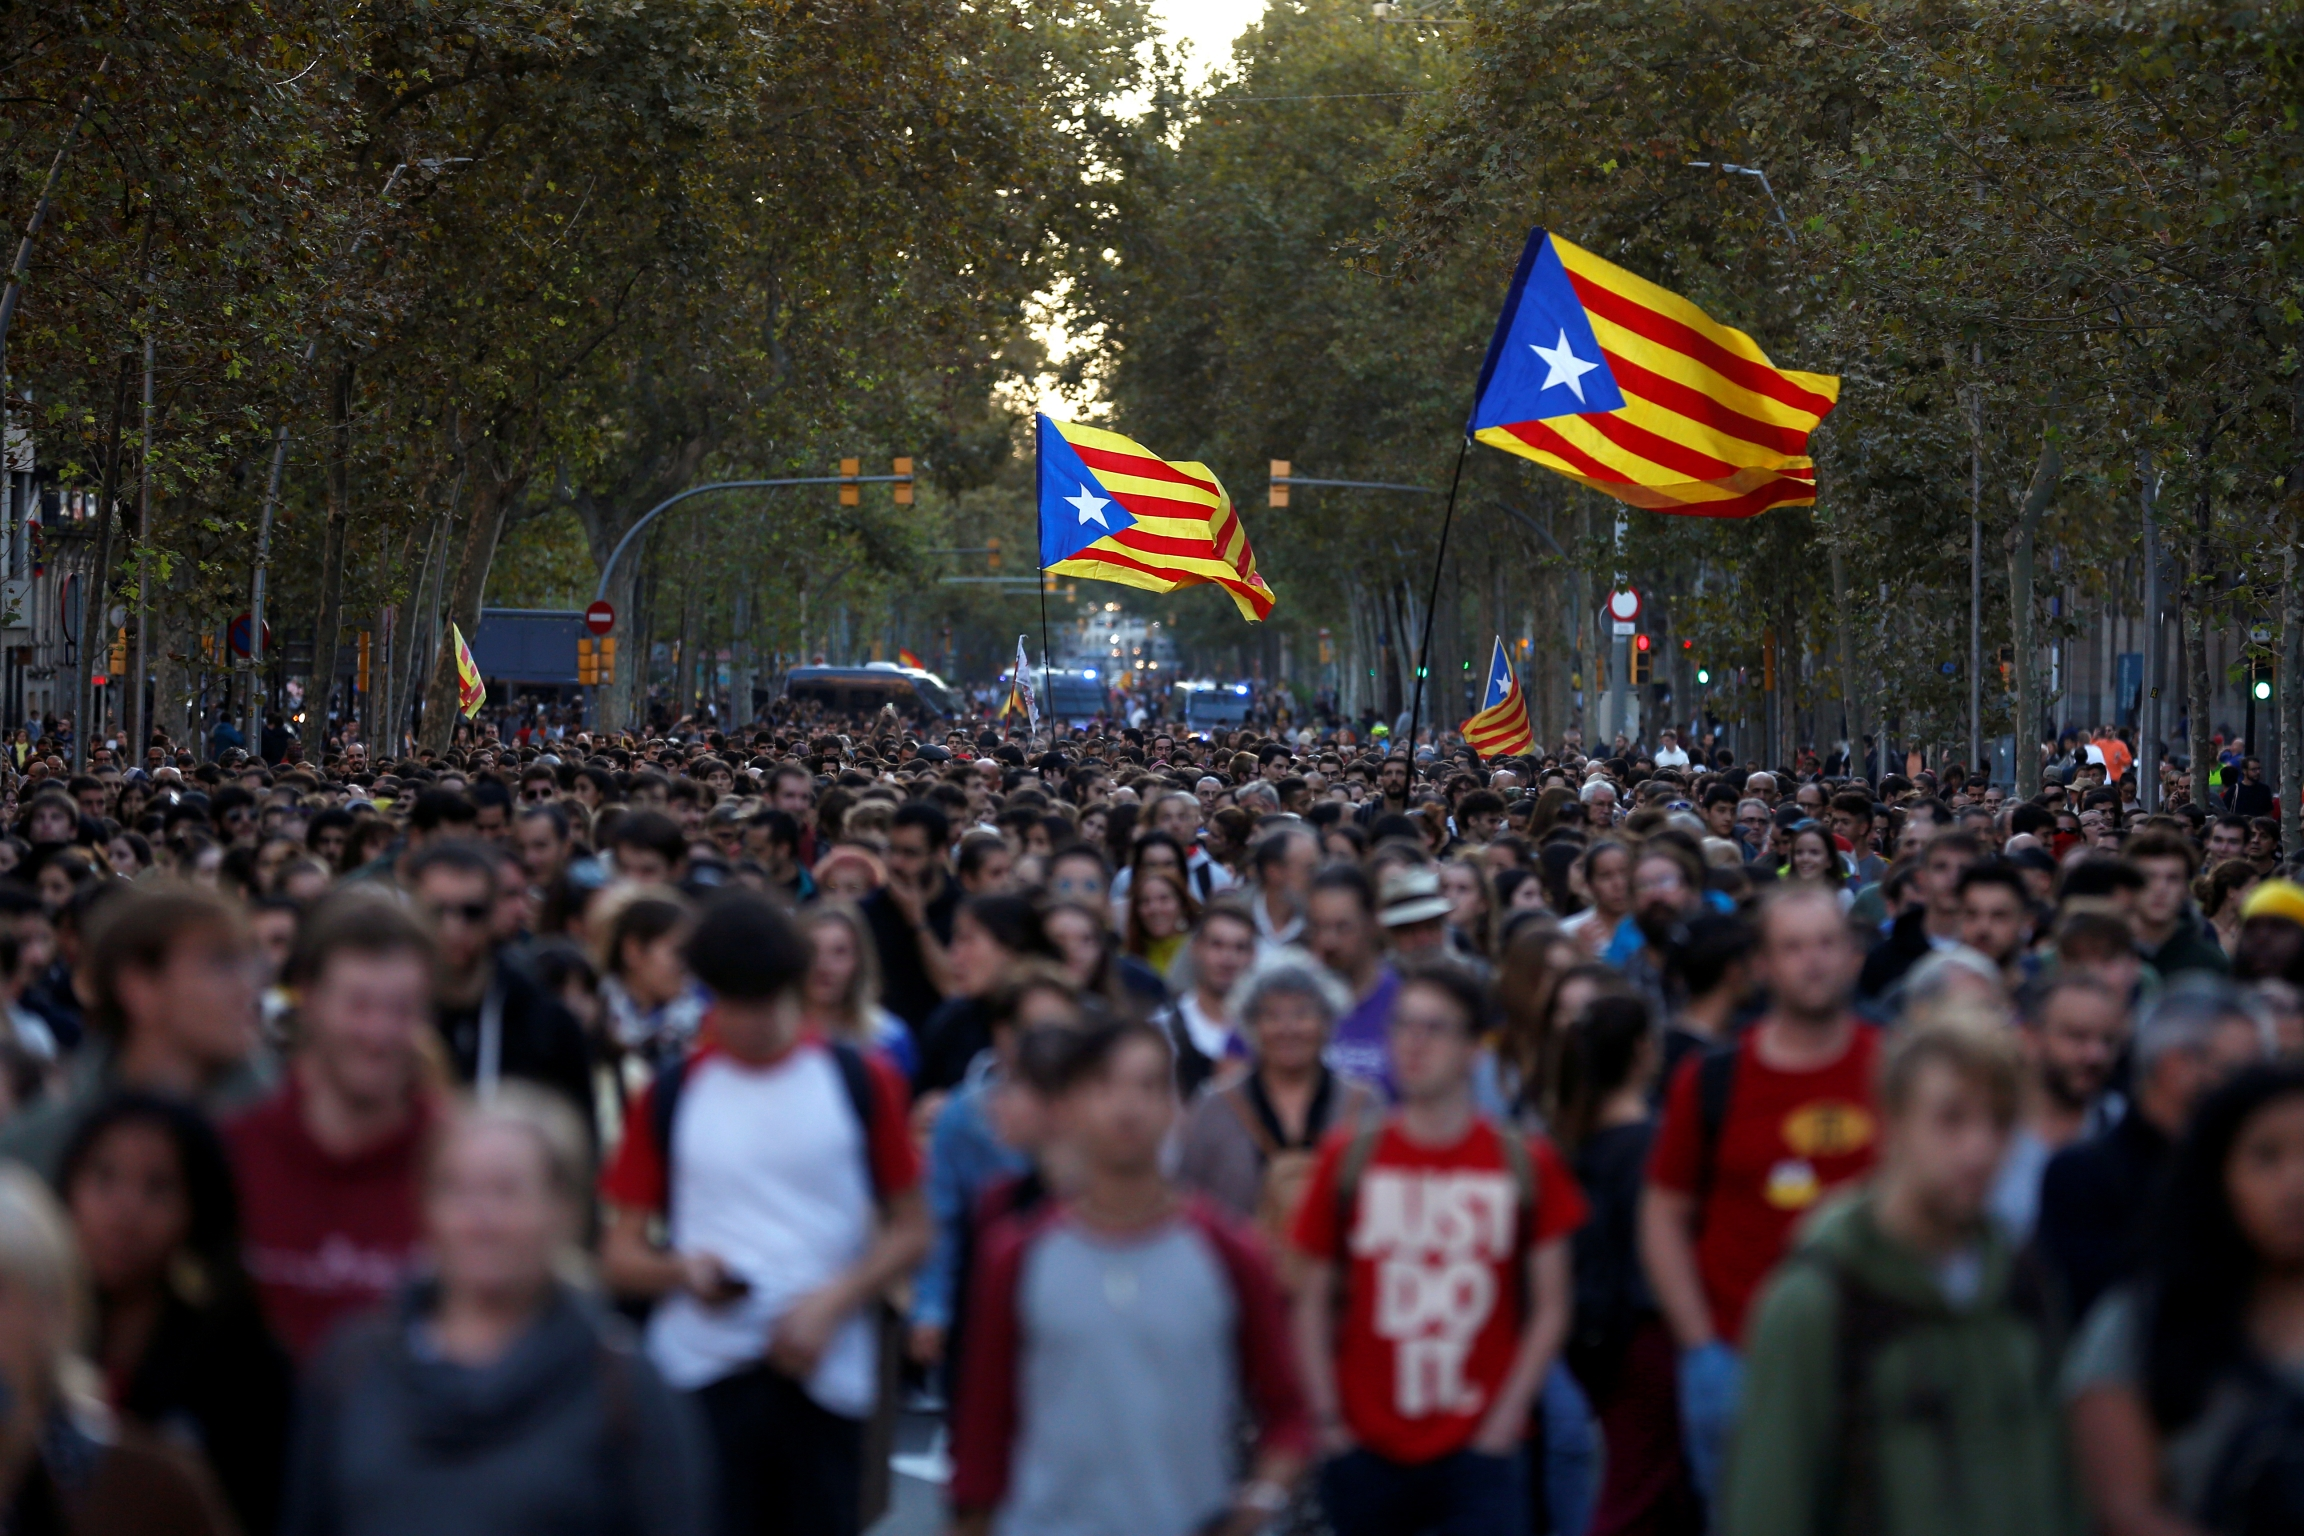 Mass protests in Barcelona with protesters carrying flags